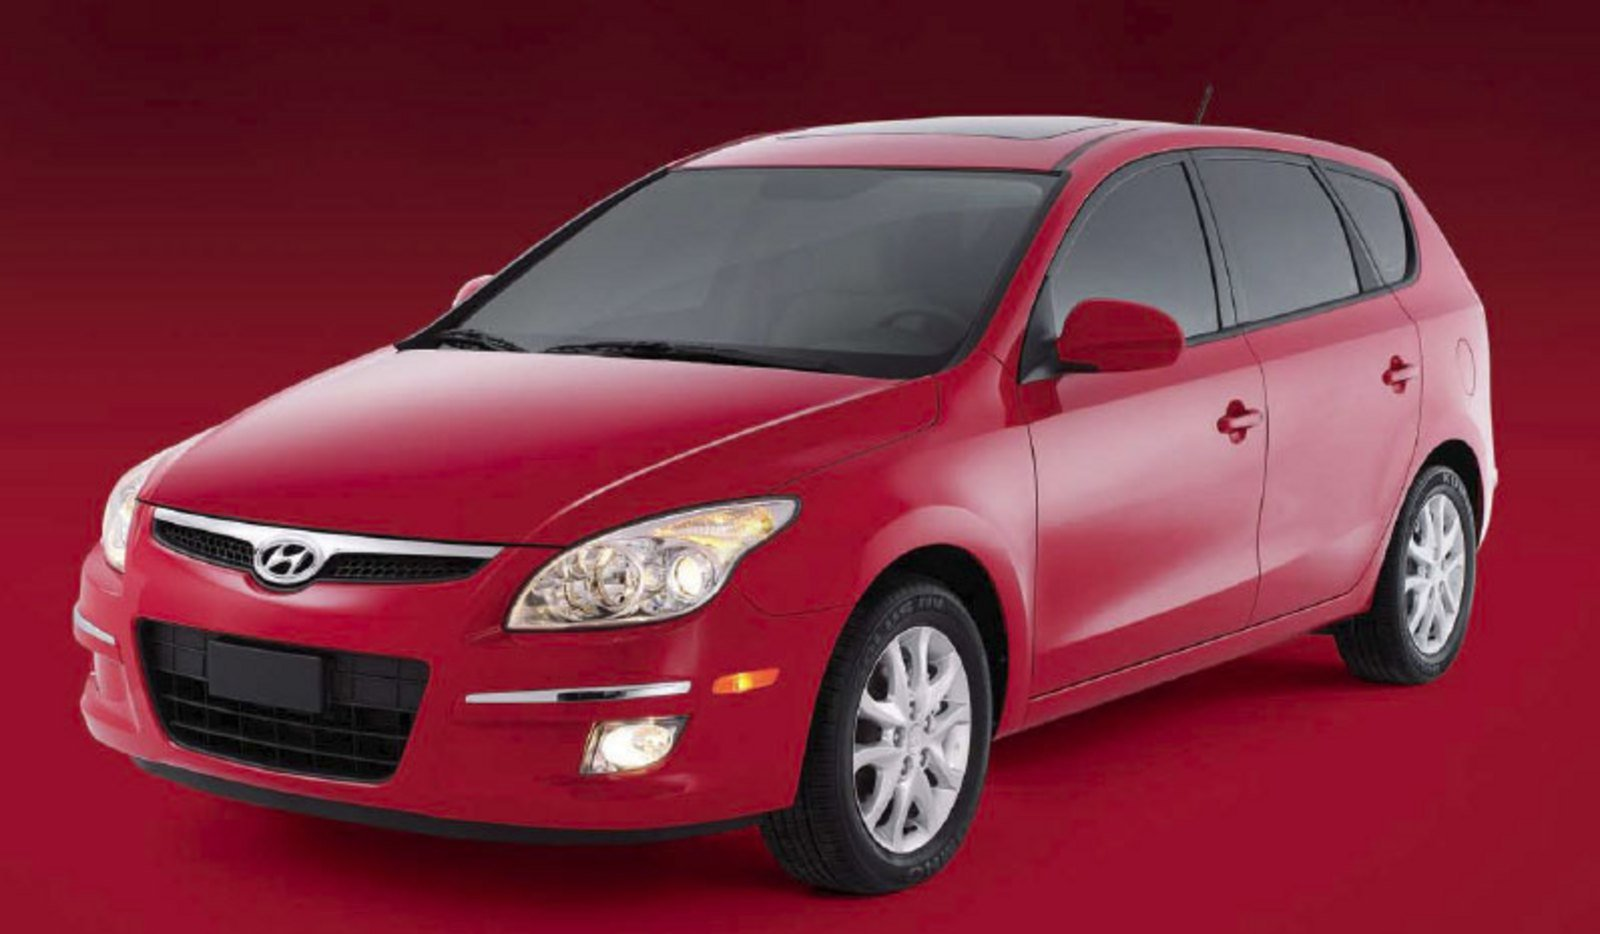 2010 hyundai elantra touring prices announced news top speed. Black Bedroom Furniture Sets. Home Design Ideas